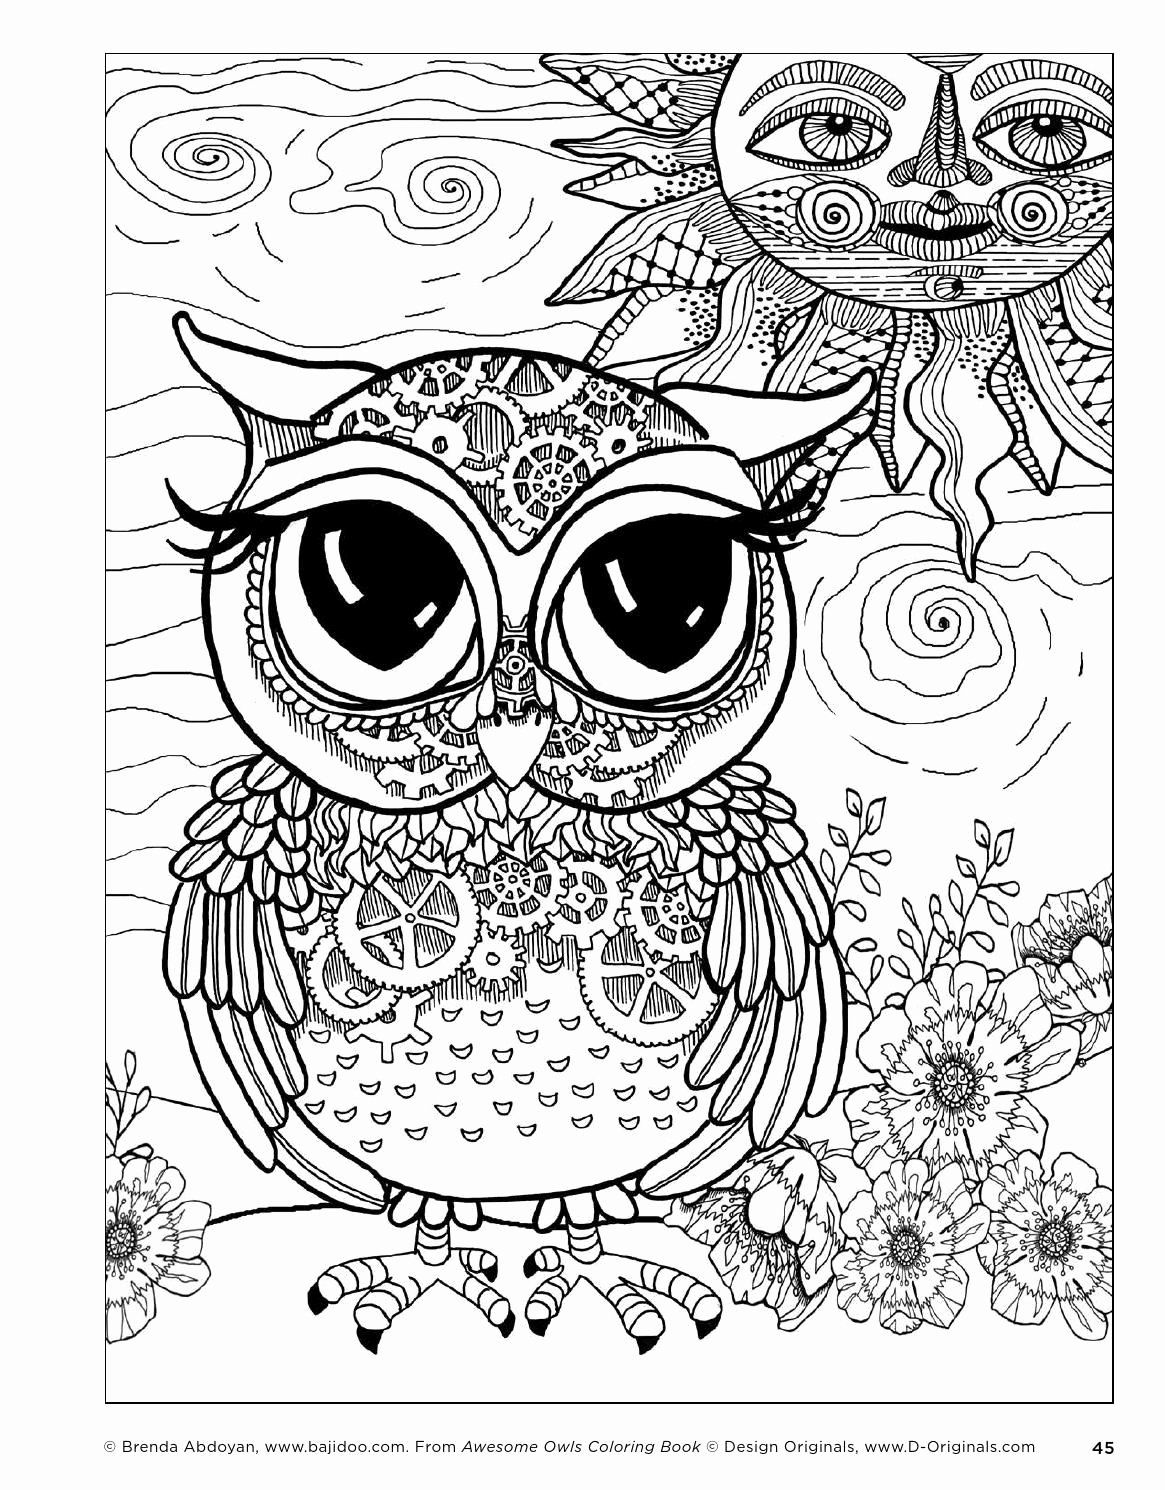 Owl Coloring Book For Adults Inspirational Awesome Owls Coloring Book By Fox Chapel Publishing Owl Coloring Pages Owl Pictures To Color Mandala Coloring Pages